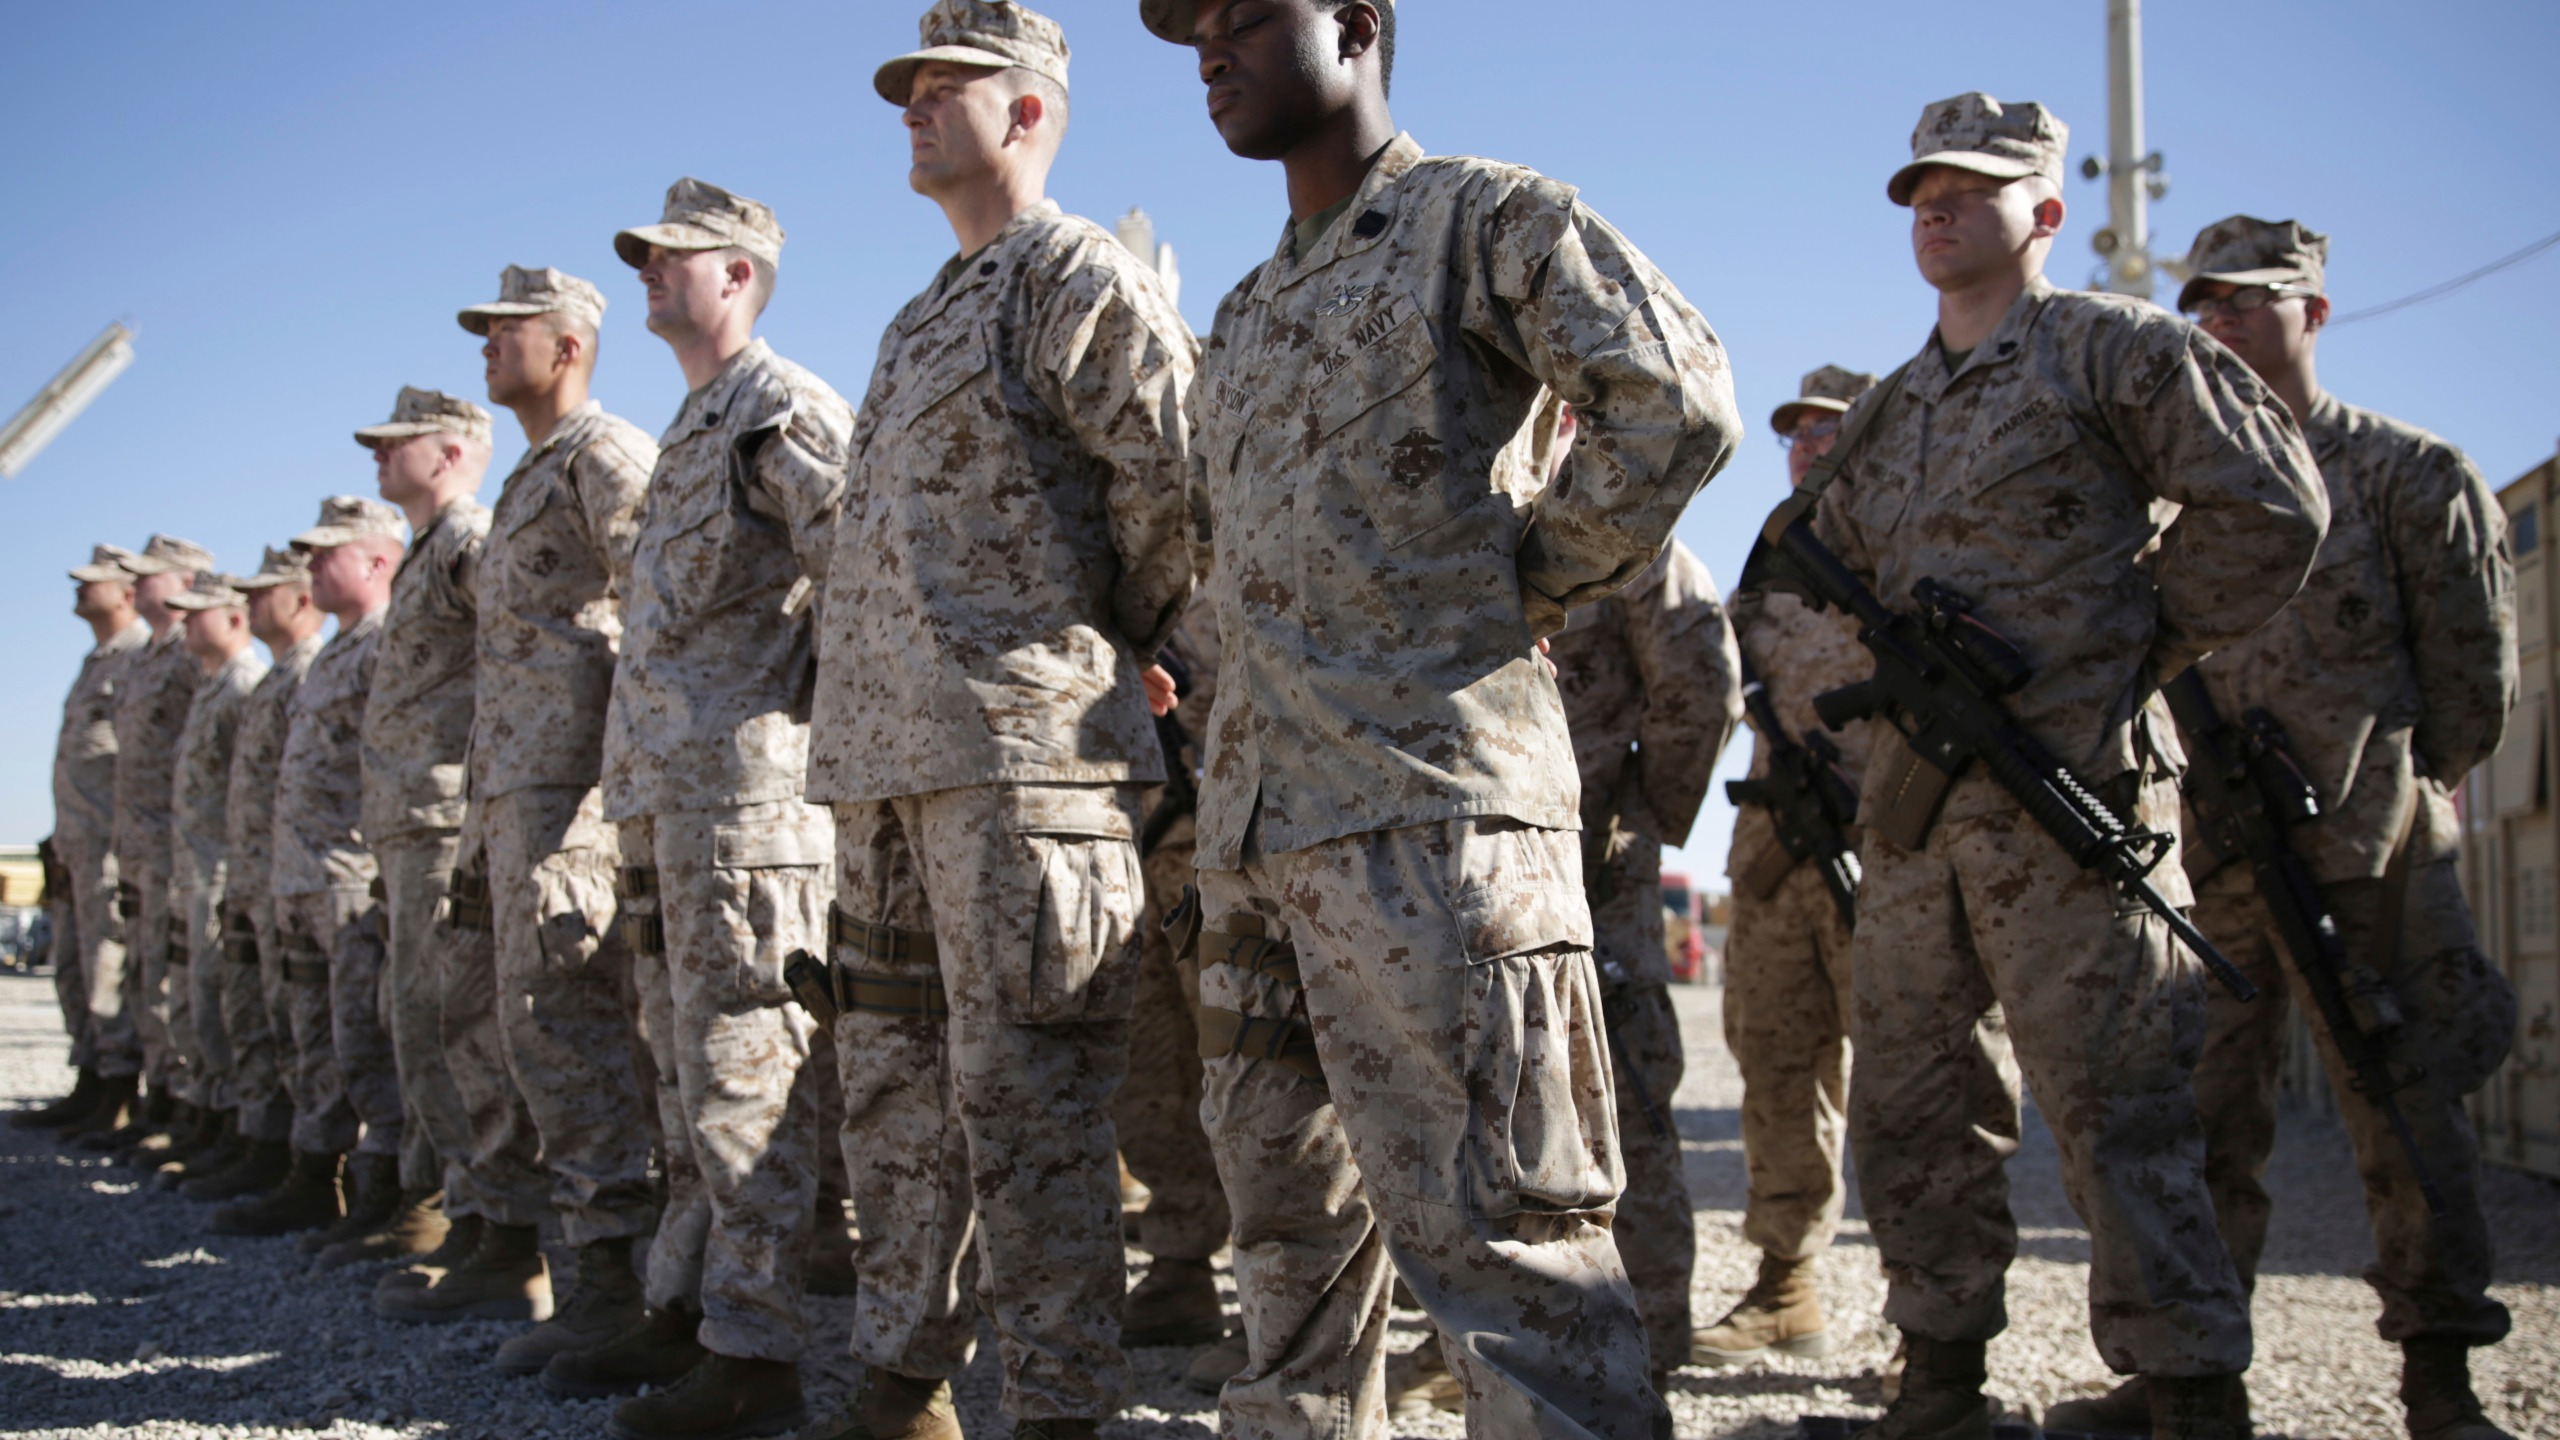 In this Jan. 15, 2018, file photo, U.S. Marines watch during the change of command ceremony at Task Force Southwest military field in Shorab military camp of Helmand province, Afghanistan.(AP Photo/Massoud Hossaini, File)